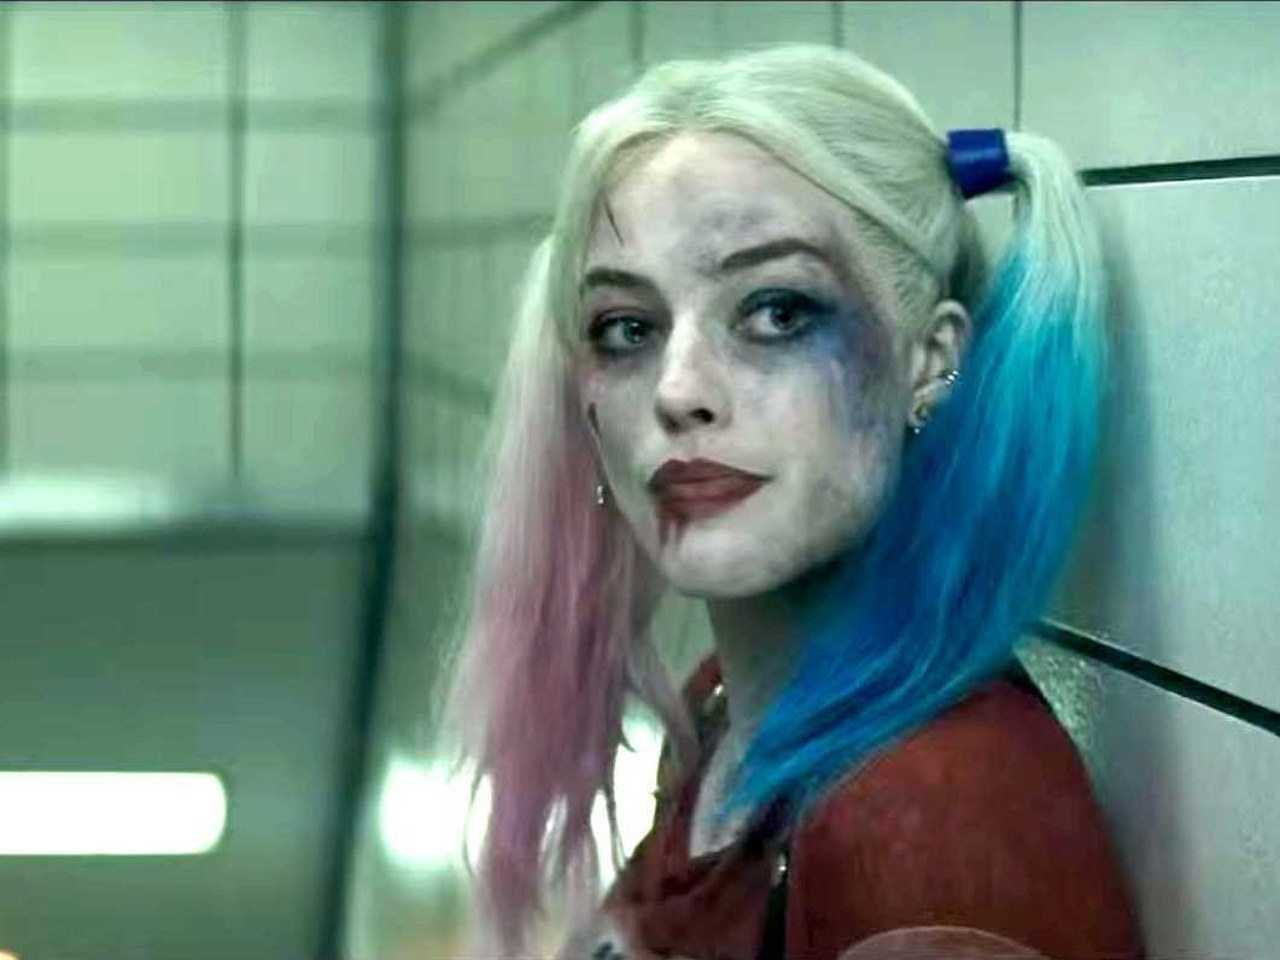 Margot Robbie Harley Quinn in Suicide Squad